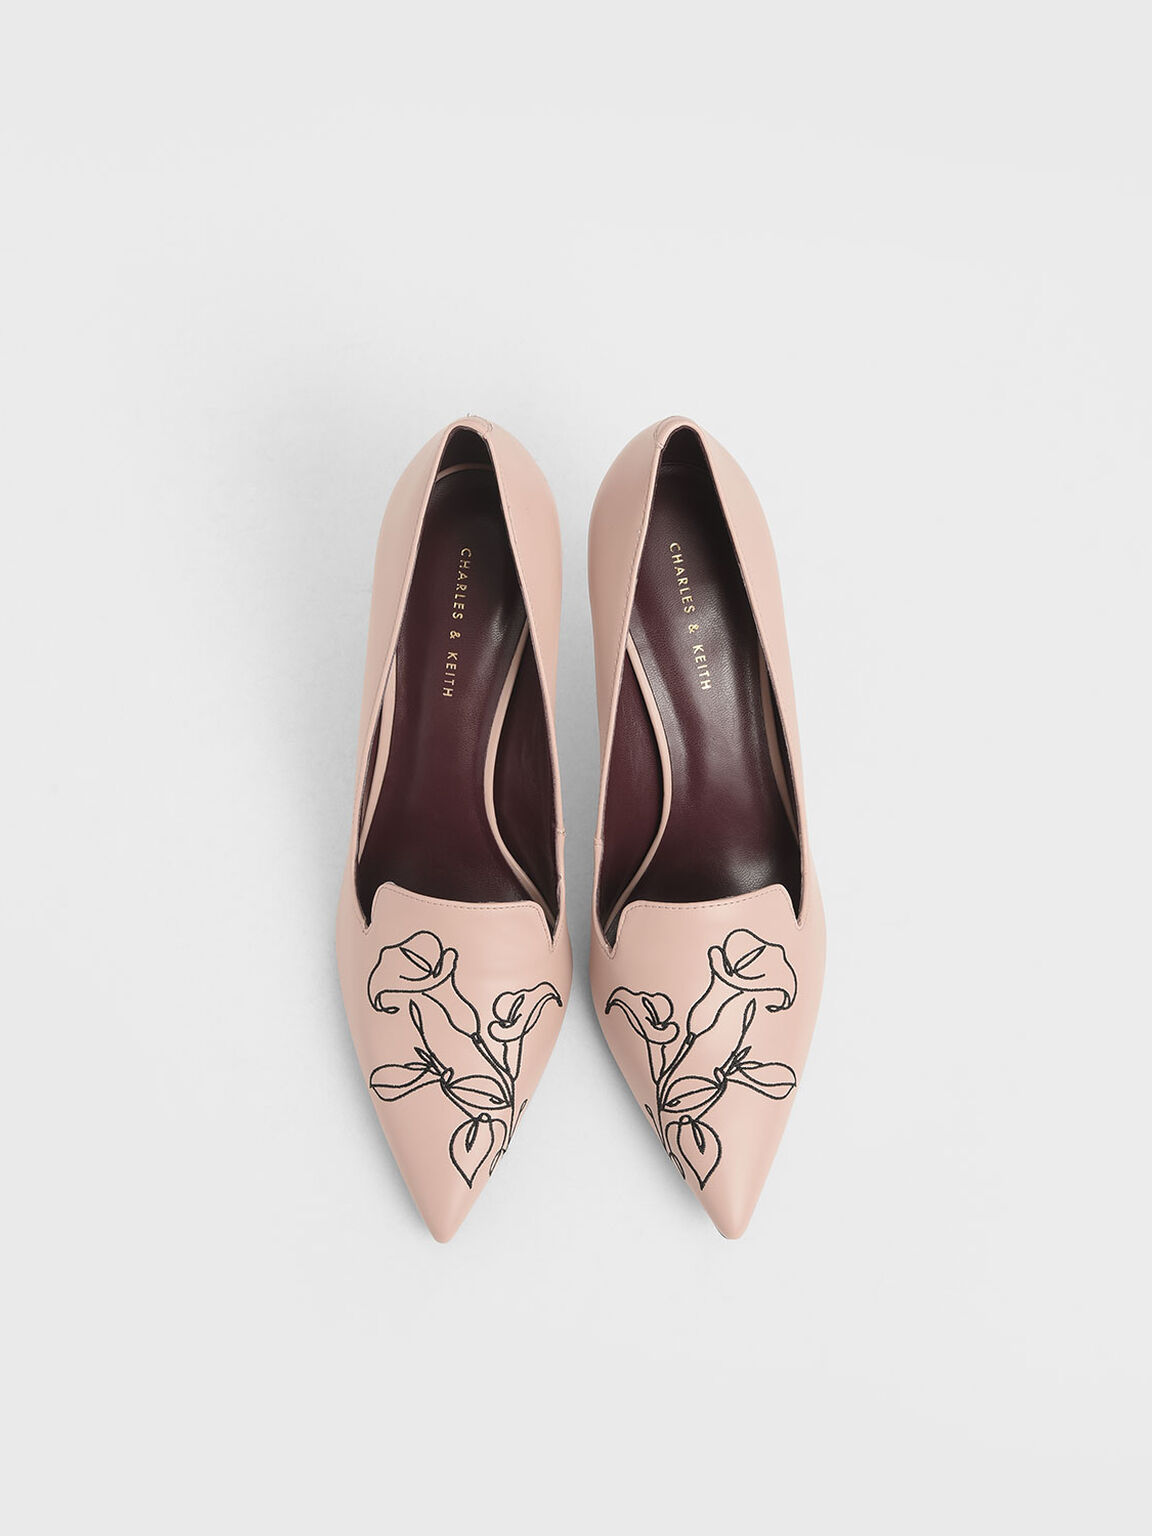 Floral Embroidered Stiletto Pumps, Nude, hi-res